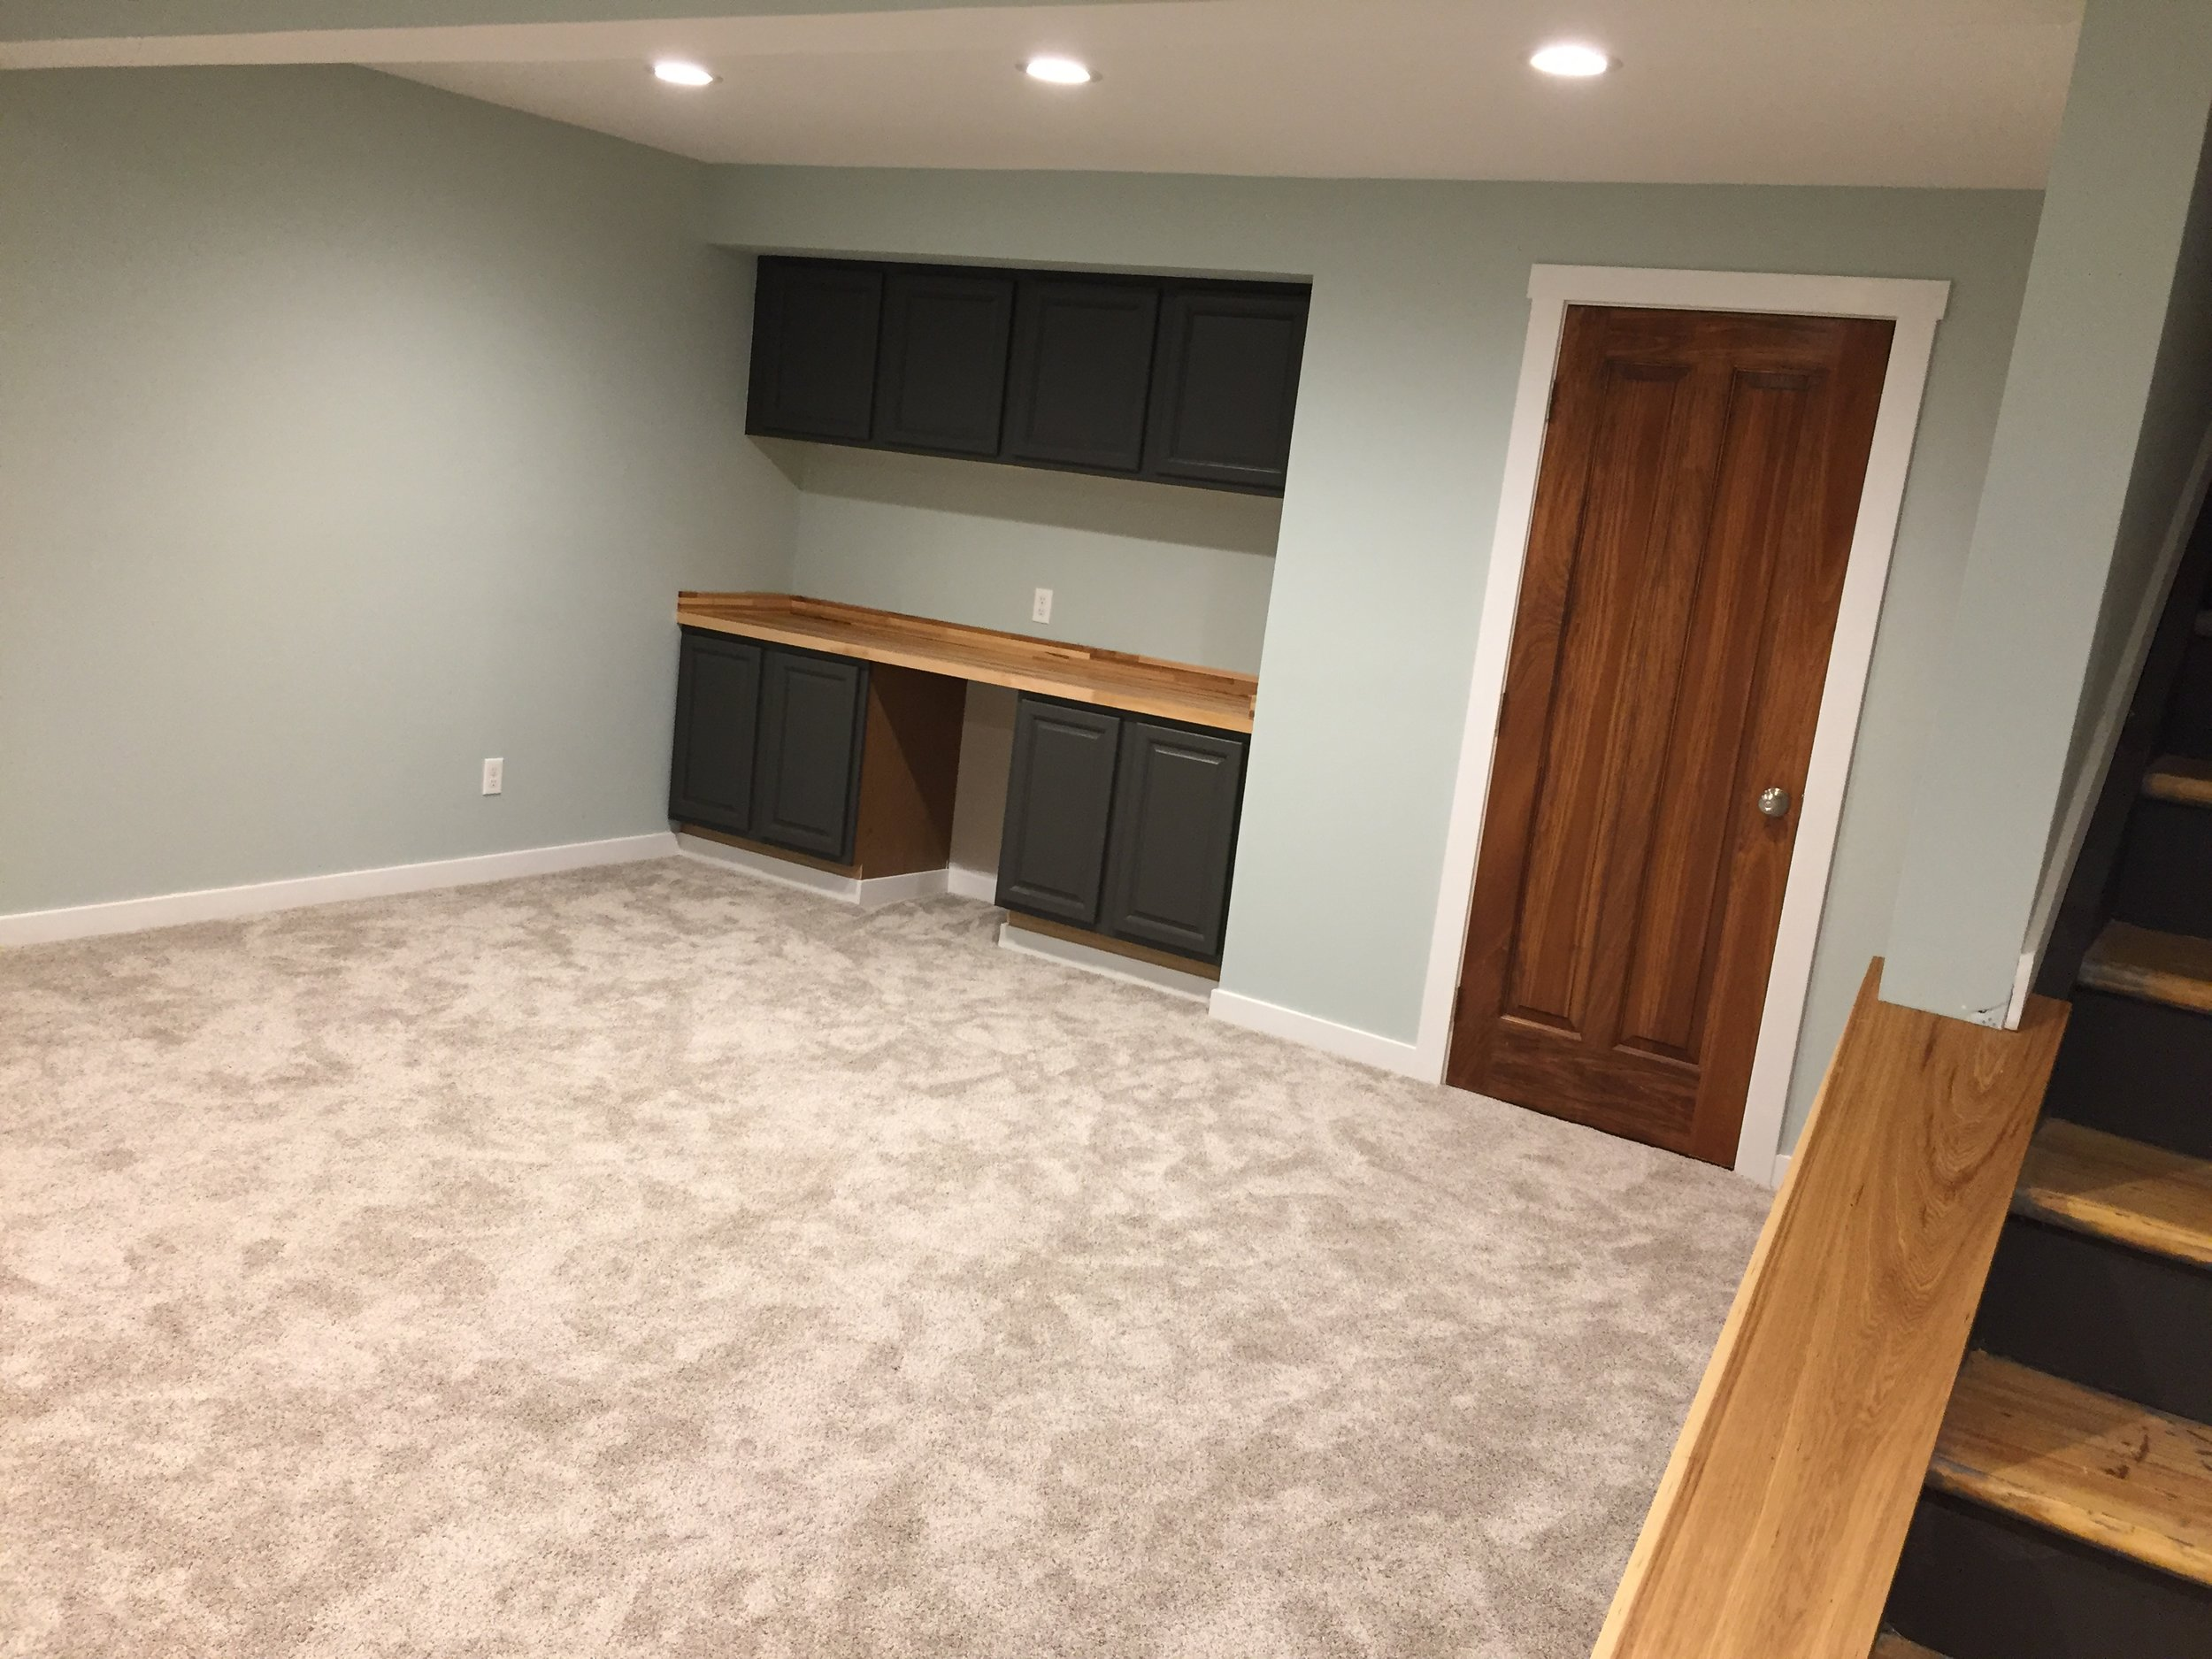 Finished Basement - Carpet, Sea Glass Walls, Natural Wood